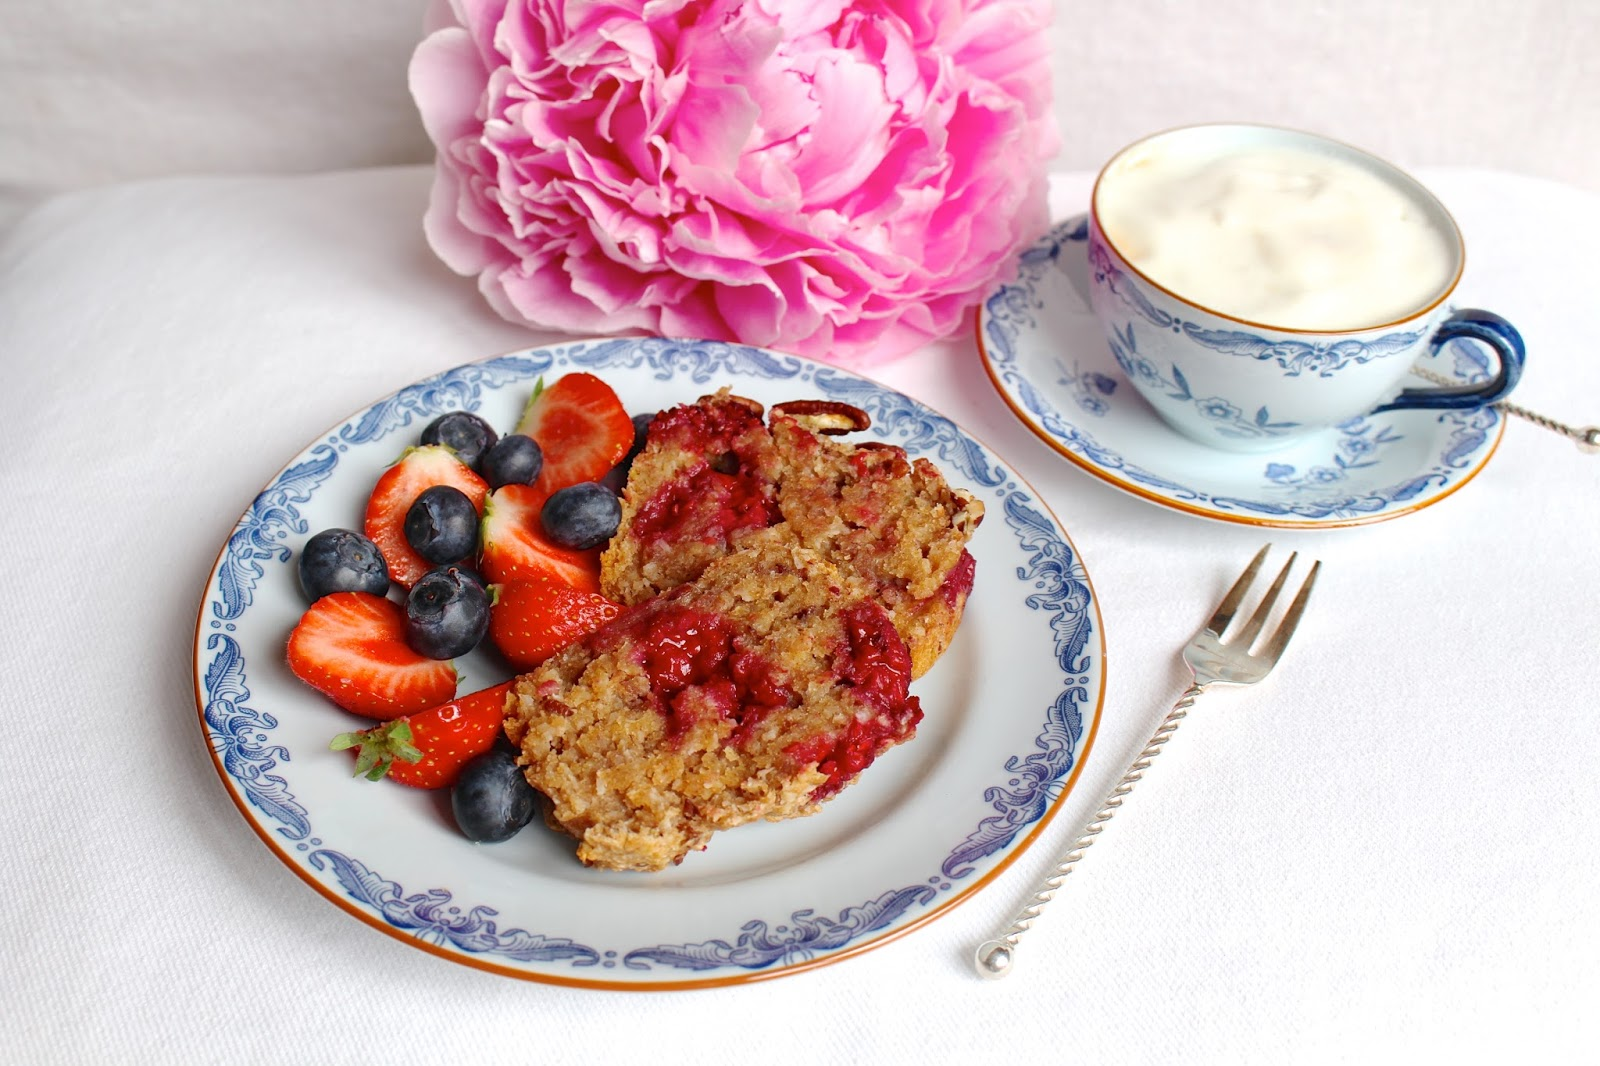 Raspberry coconut breakfast cake recipe